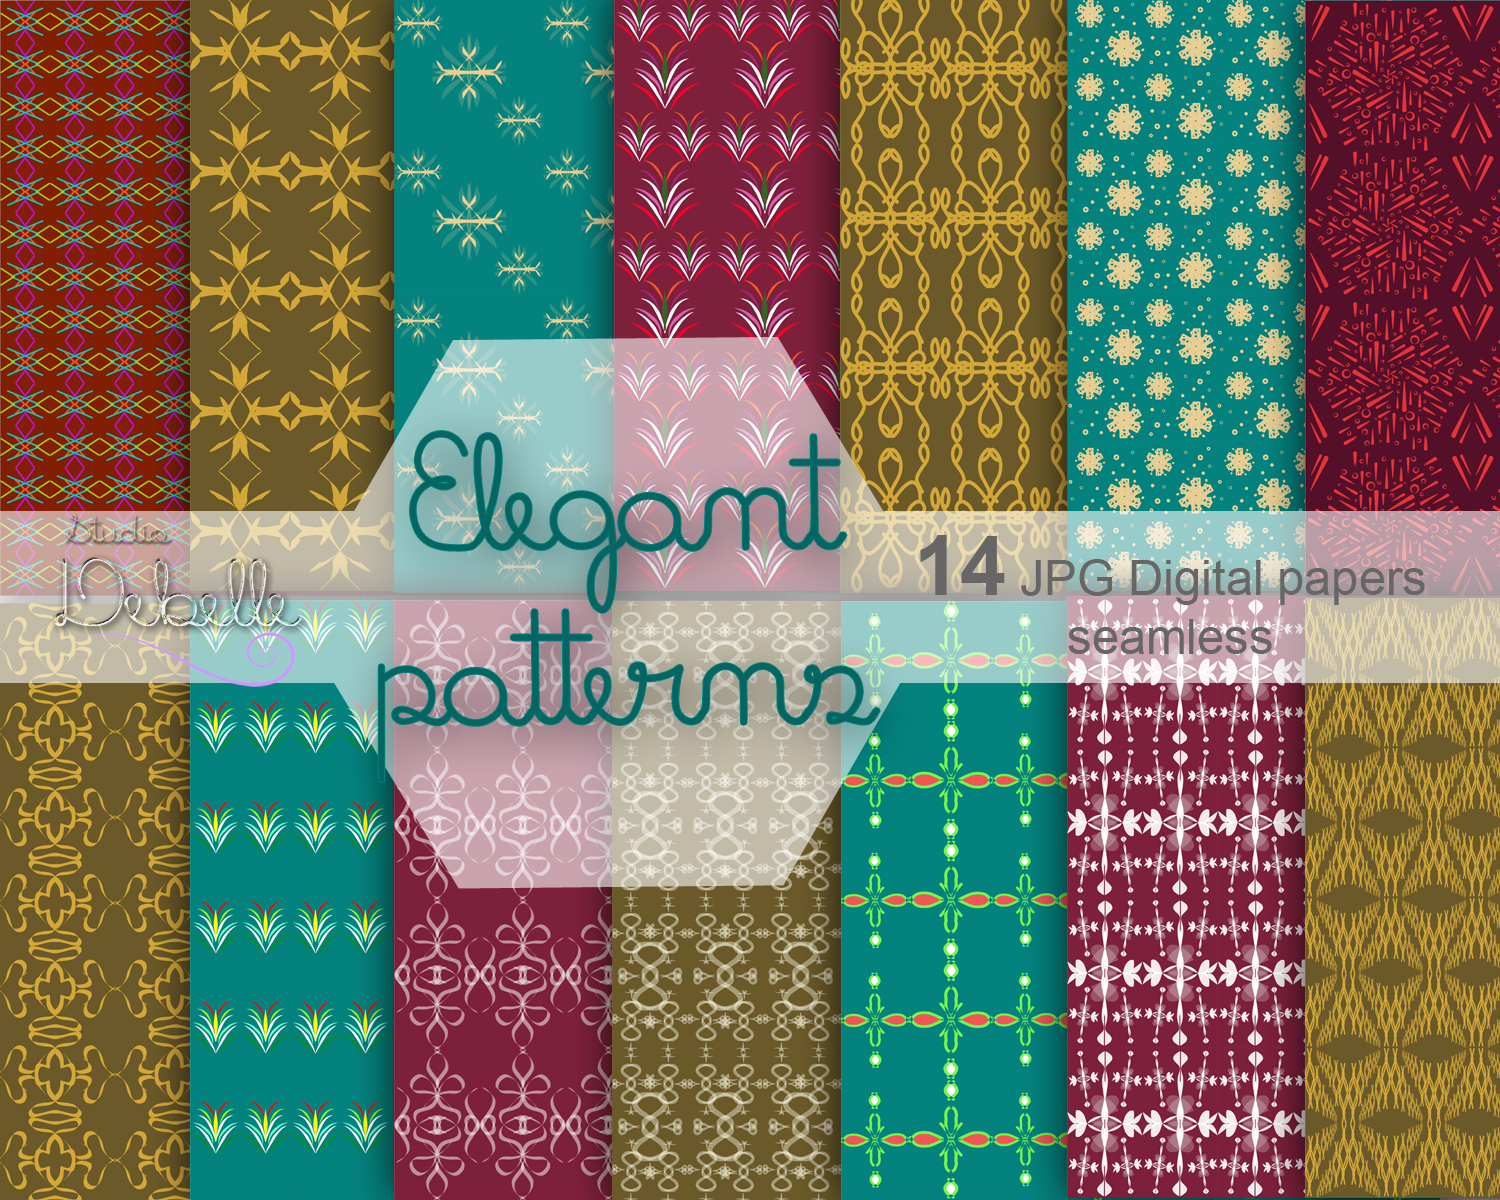 Elegant Patterns digital paper pack seamless pattern example image 1